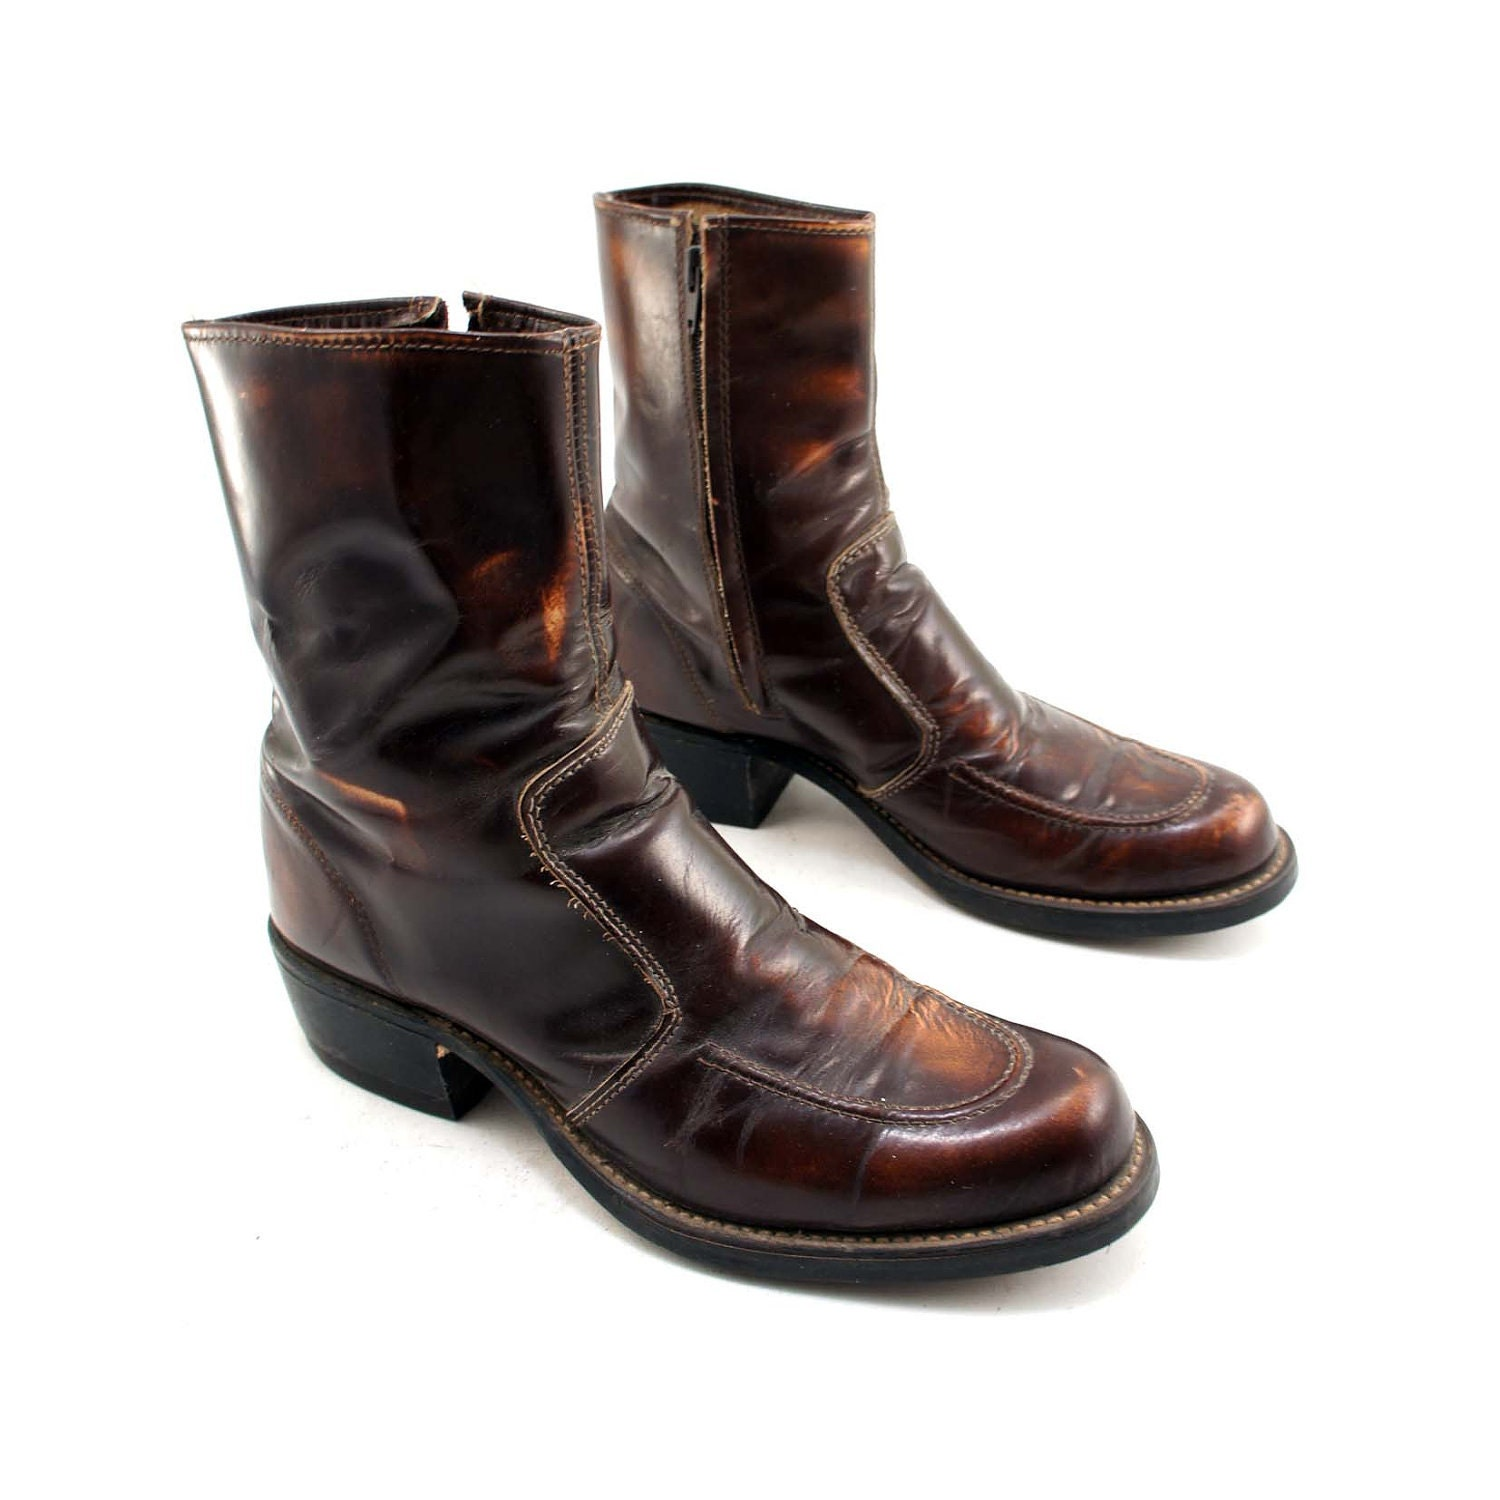 s ankle boots in a beatle boot style zipper boots by